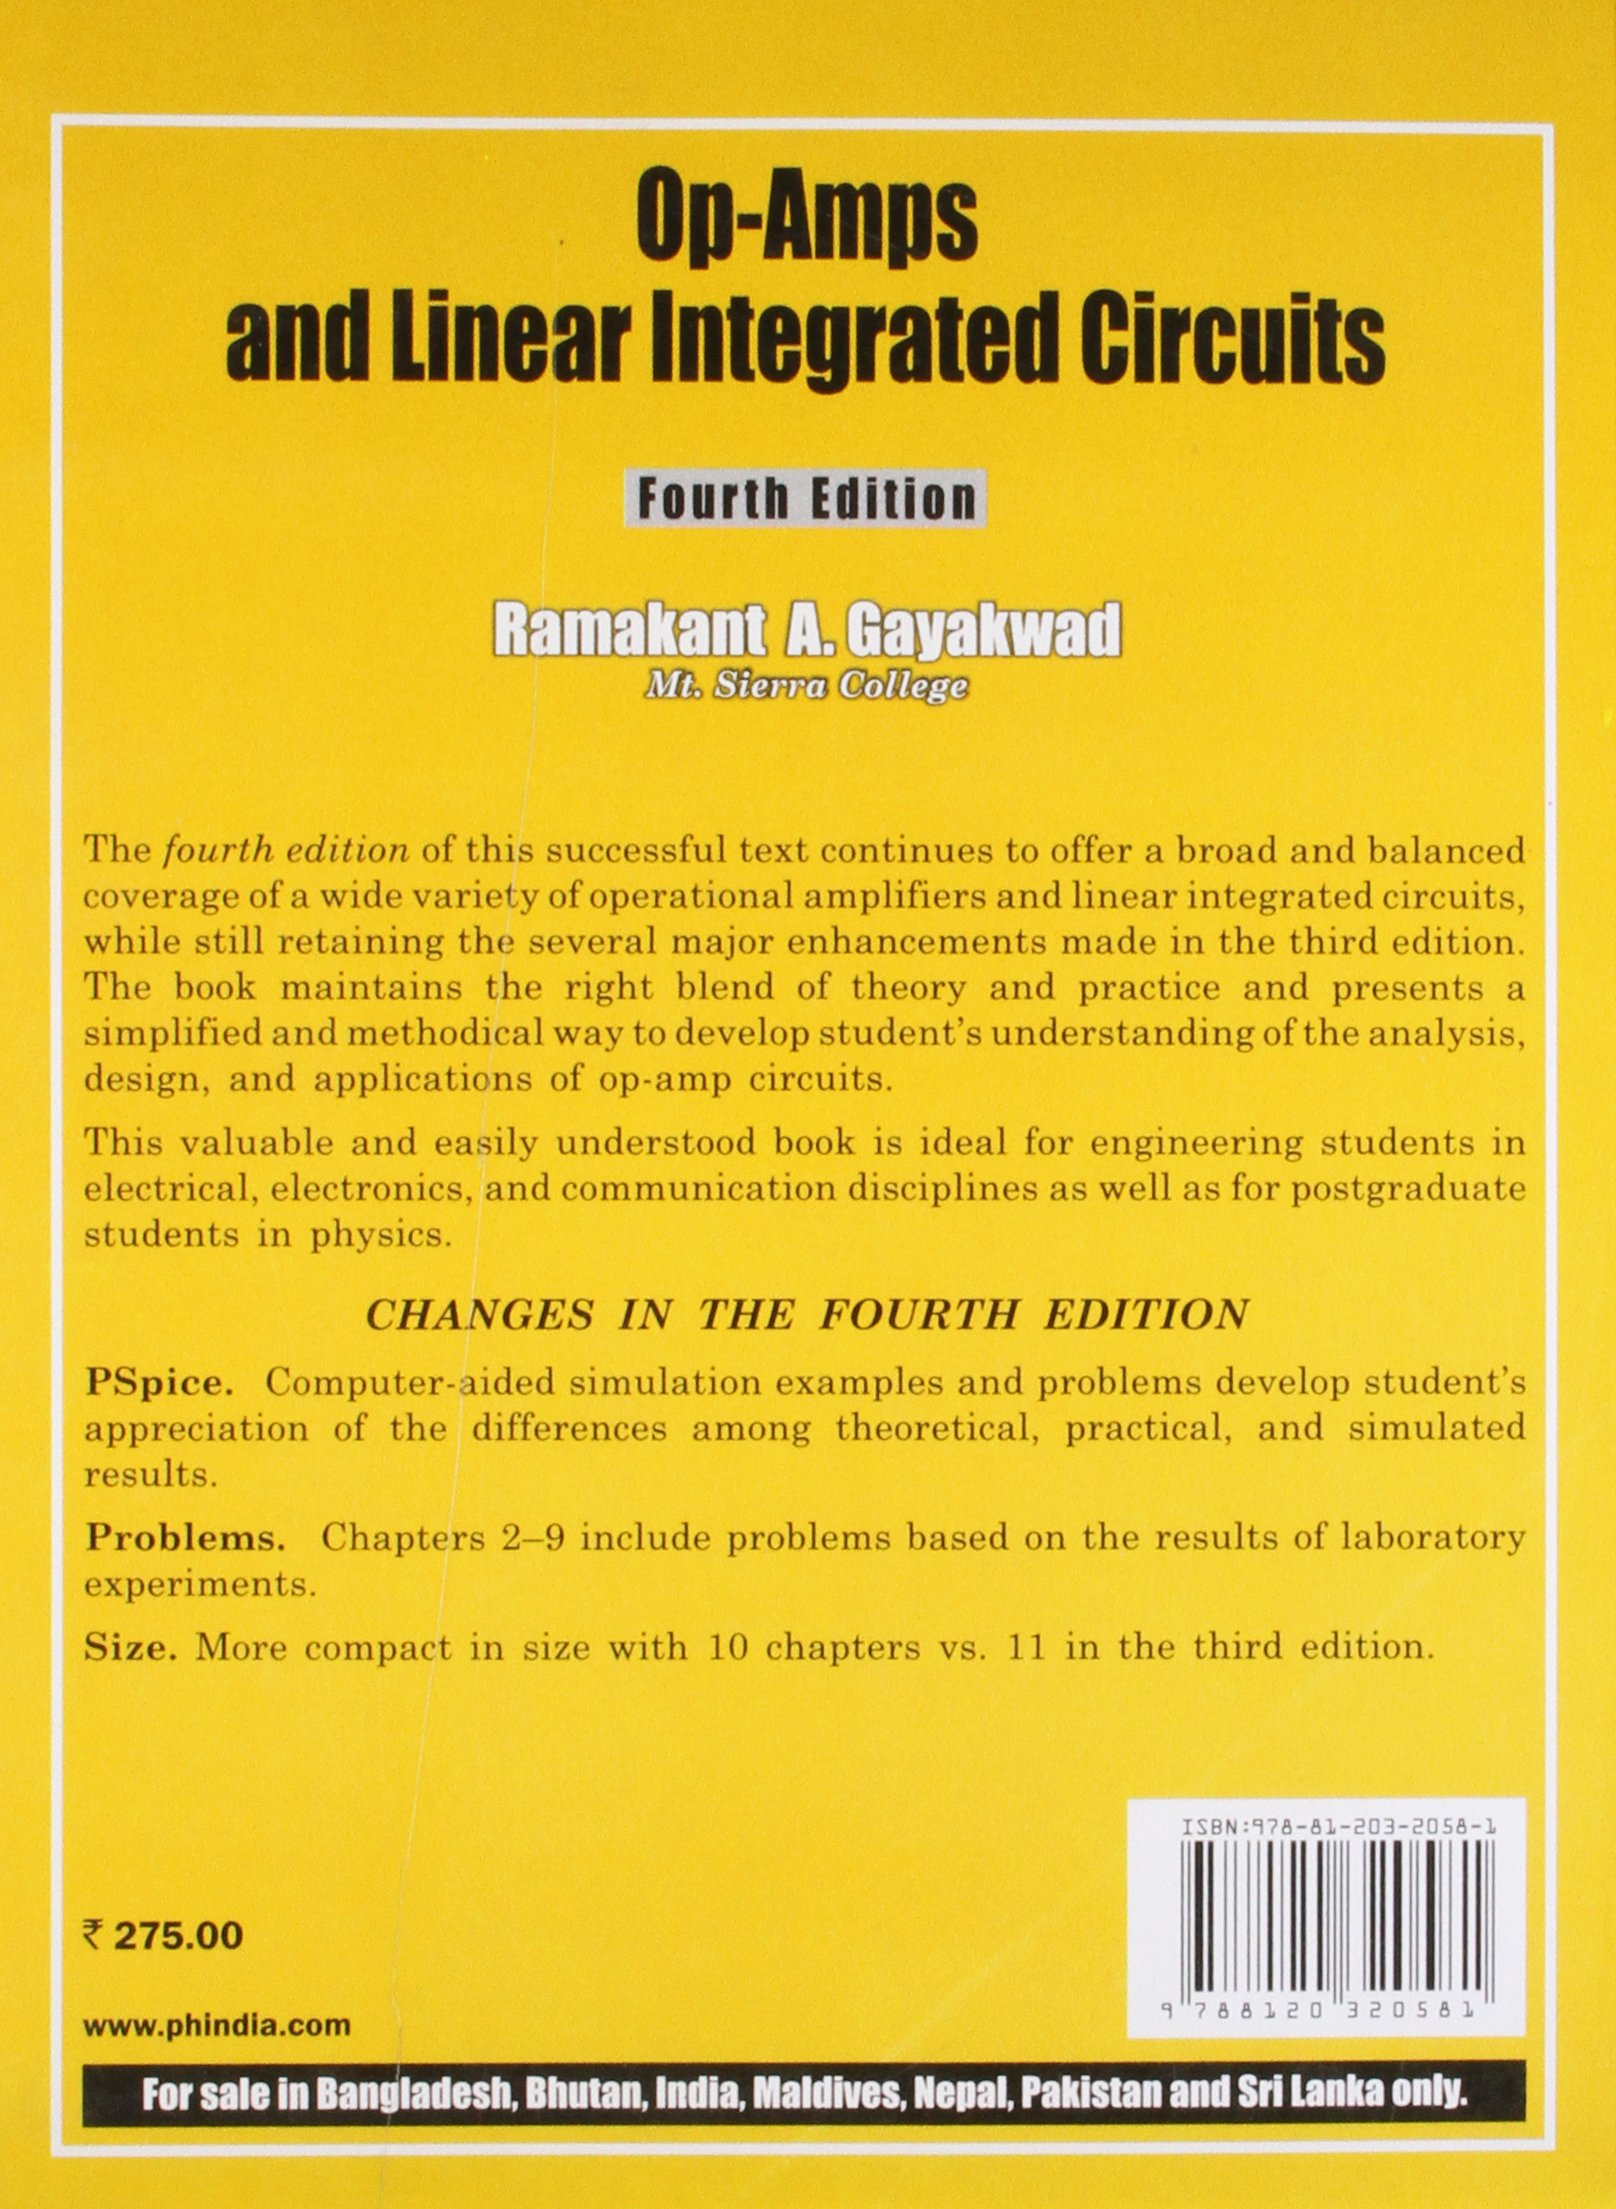 Op Amps And Linear Integrated Circuits 4th Ed Gayakwad Specialpurpose Opamp Electronics Questions Answers 9788120320581 Books